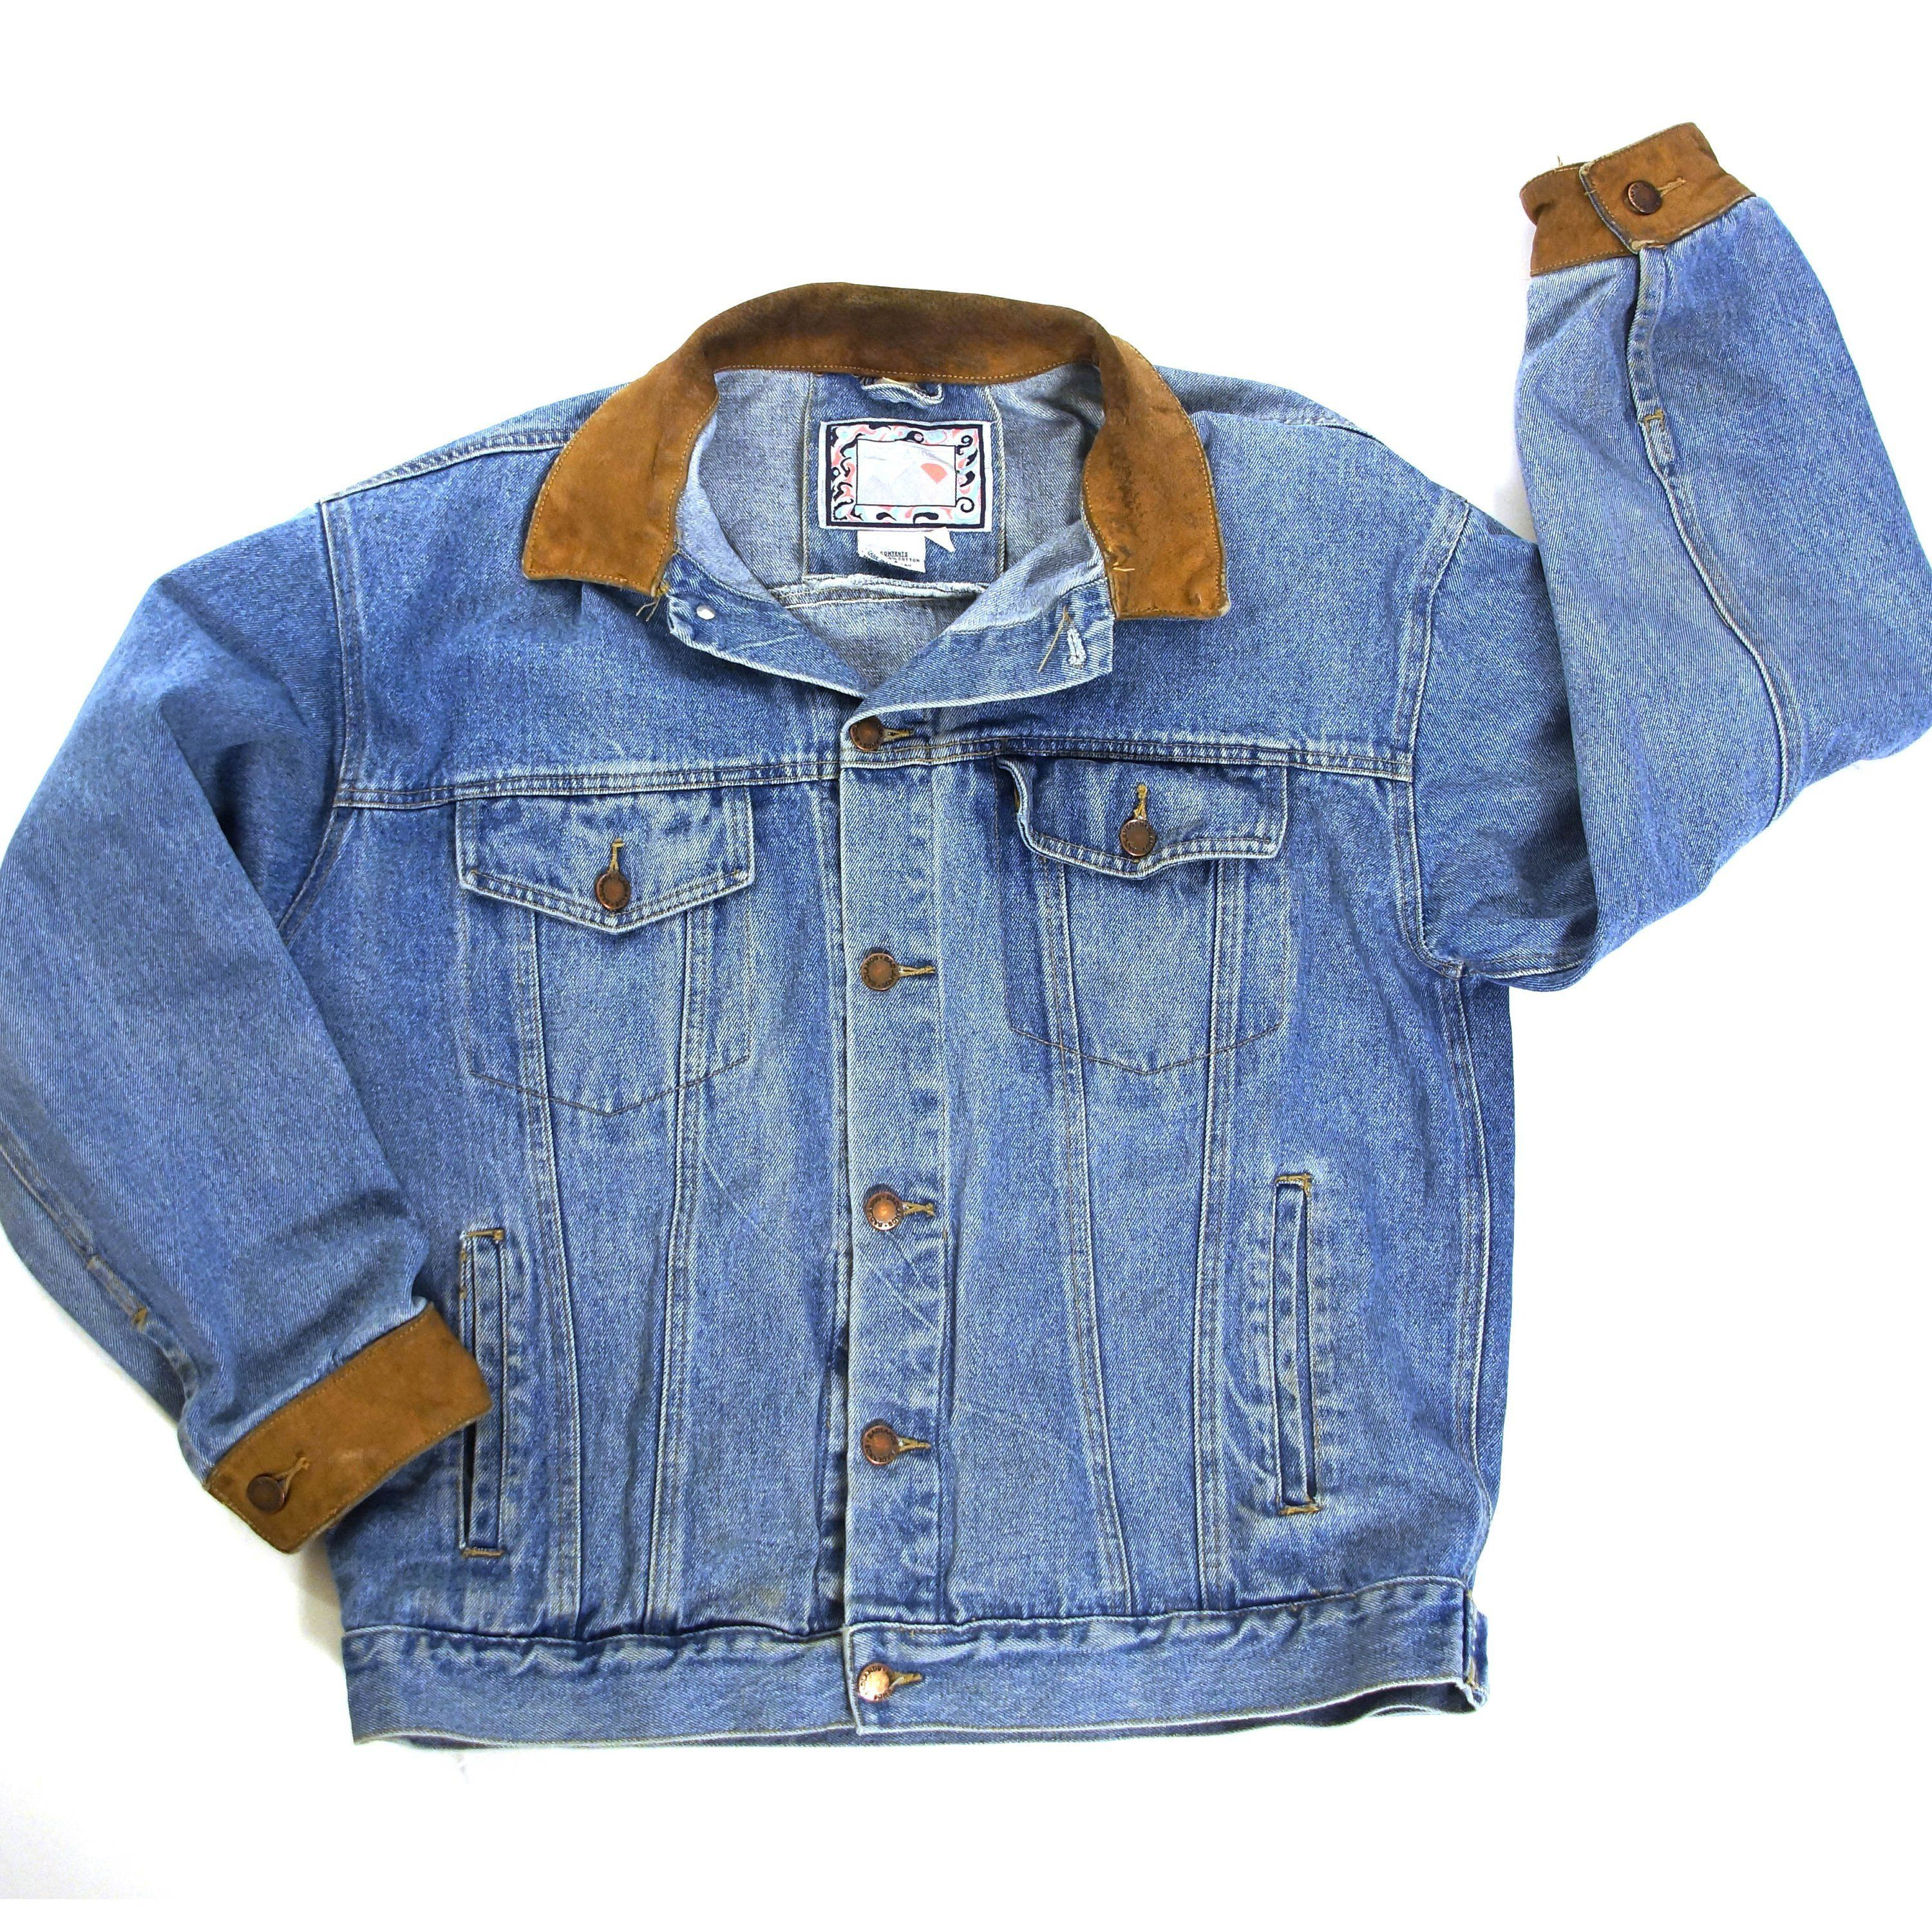 Distressed Denim Jacket Vintage 80s Classic Trucker Jeans Jacket With Leather Trim Unisex 46 Chest By Spu Distressed Denim Jacket Vintage Denim Jacket Jackets